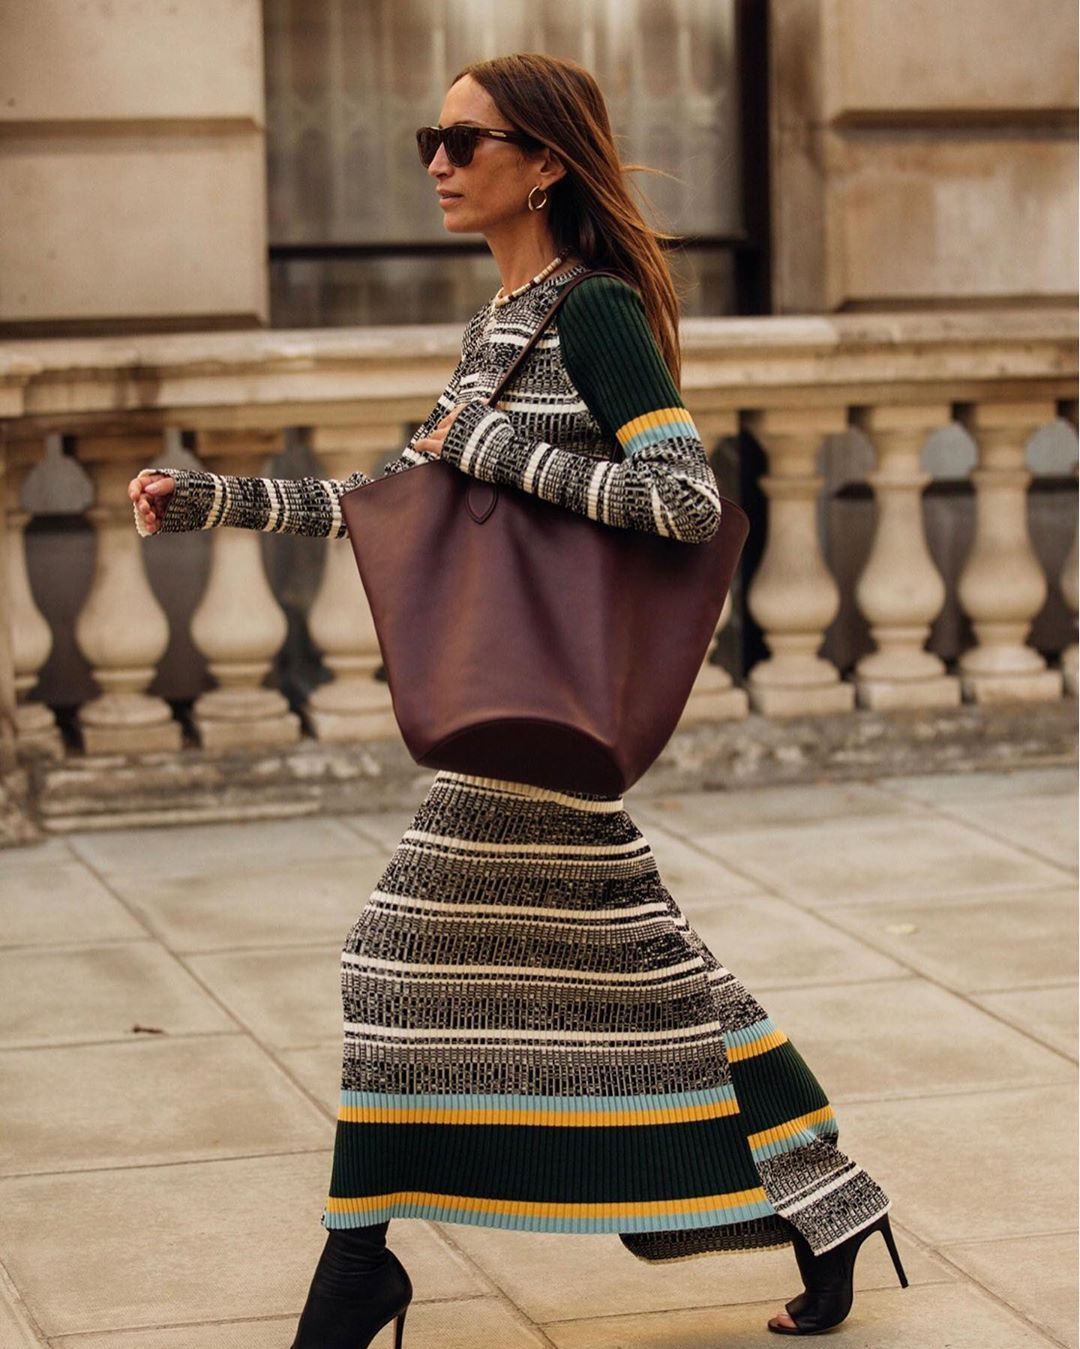 victoria-beckham-striped-ribbed-cotton-sweater-matching-skirt-chloe-harrouche-street-style